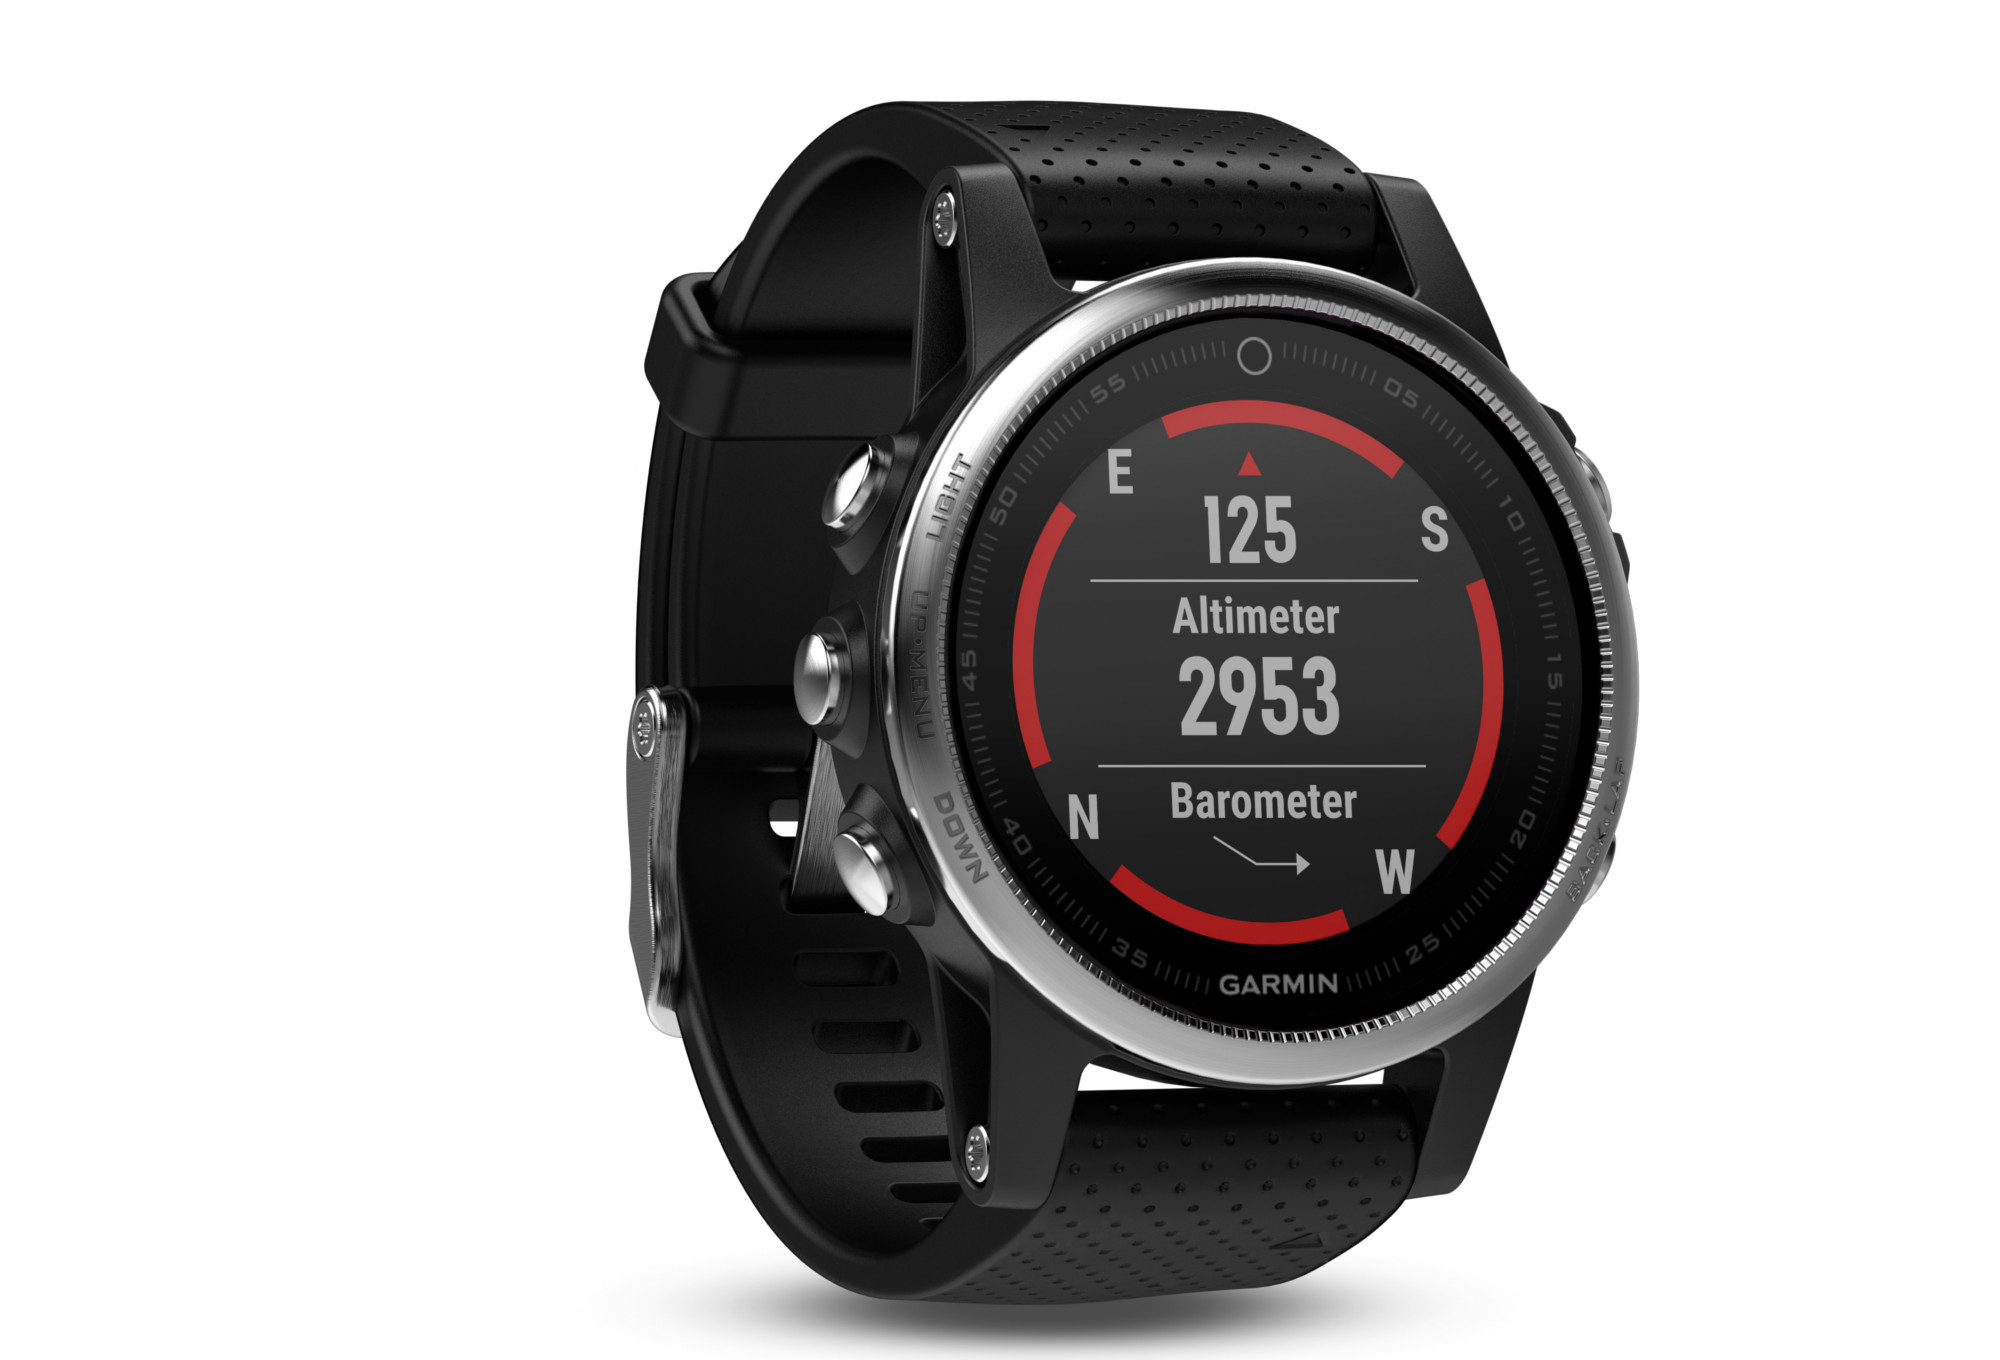 montre gps garmin fenix 5s hr argent. Black Bedroom Furniture Sets. Home Design Ideas